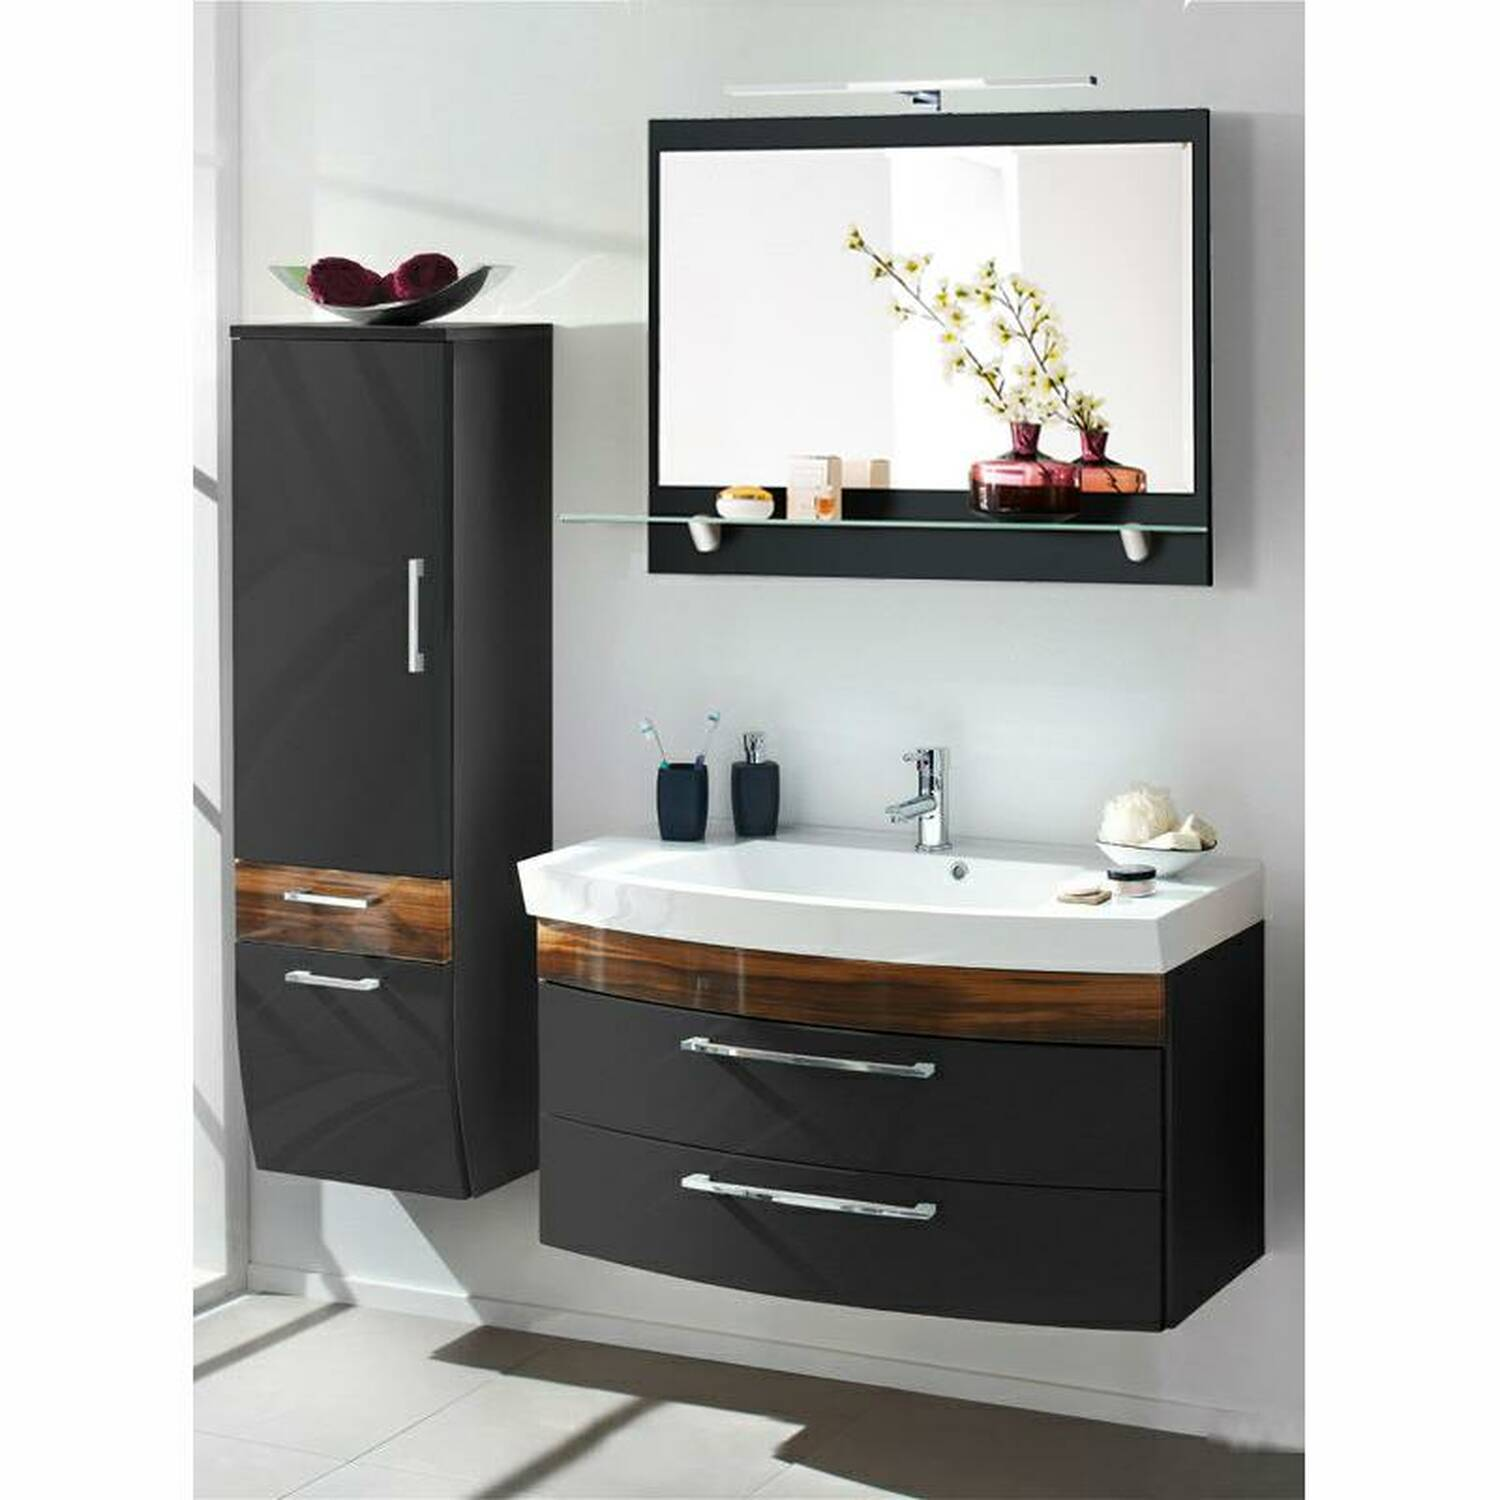 badm bel set rimao 100 hochglanz anthrazit waln. Black Bedroom Furniture Sets. Home Design Ideas